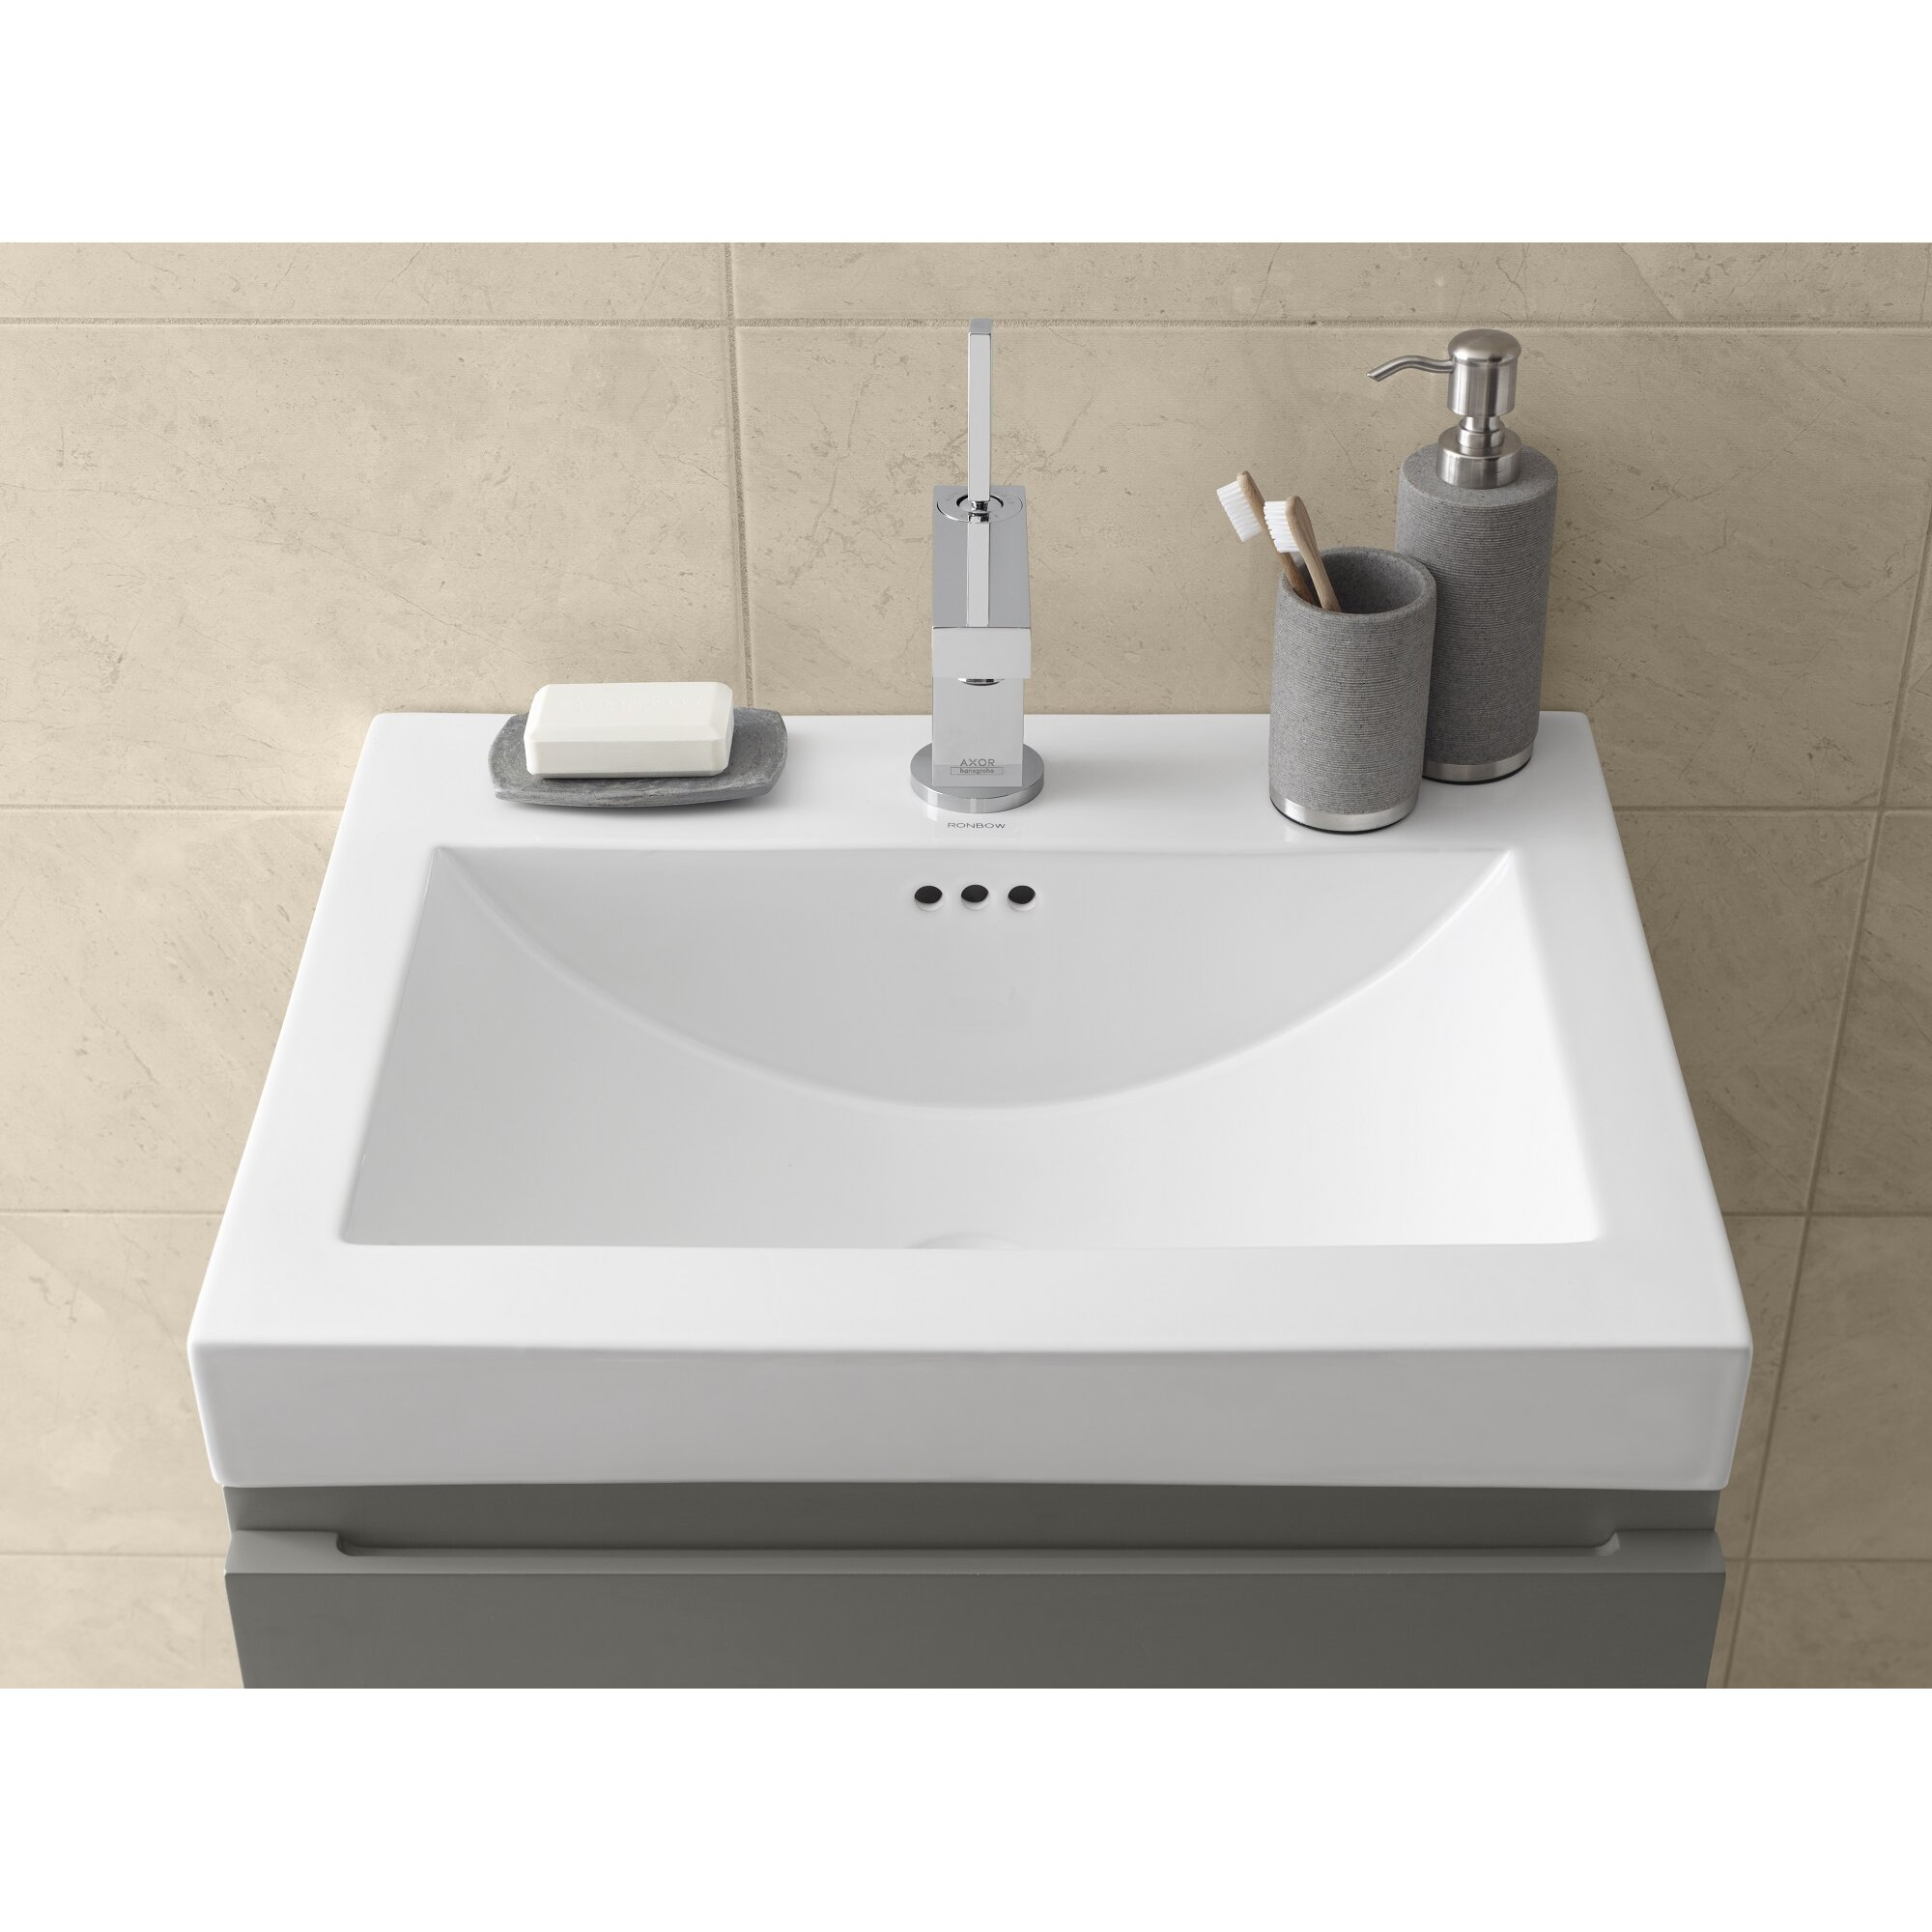 Ronbow Ronbow Rectangle Ceramic Semi Recessed Vessel Bathroom Sink .